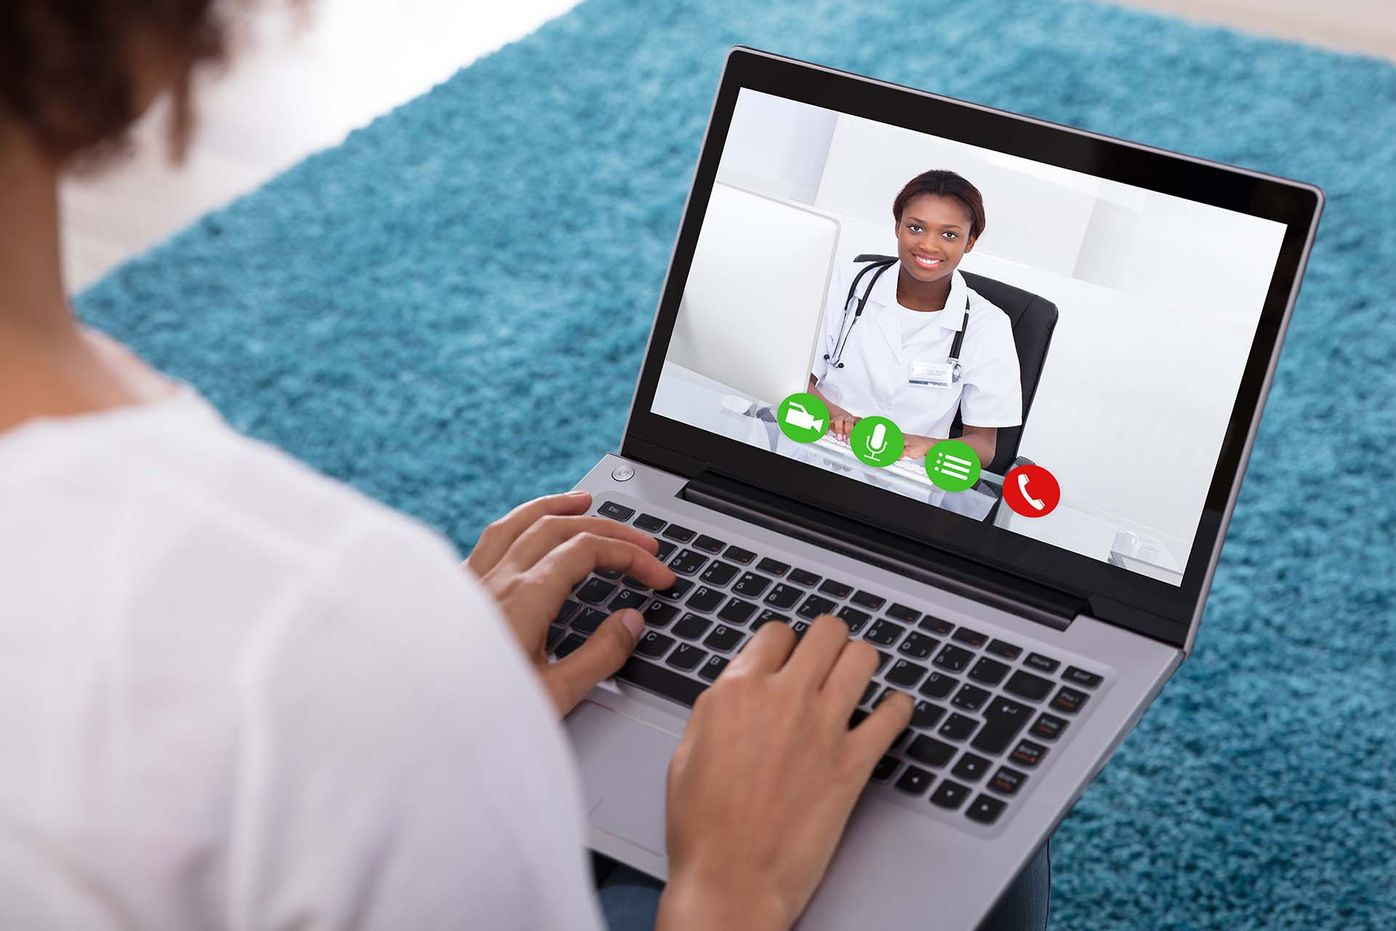 Woman on laptop watching female doctor on screen.